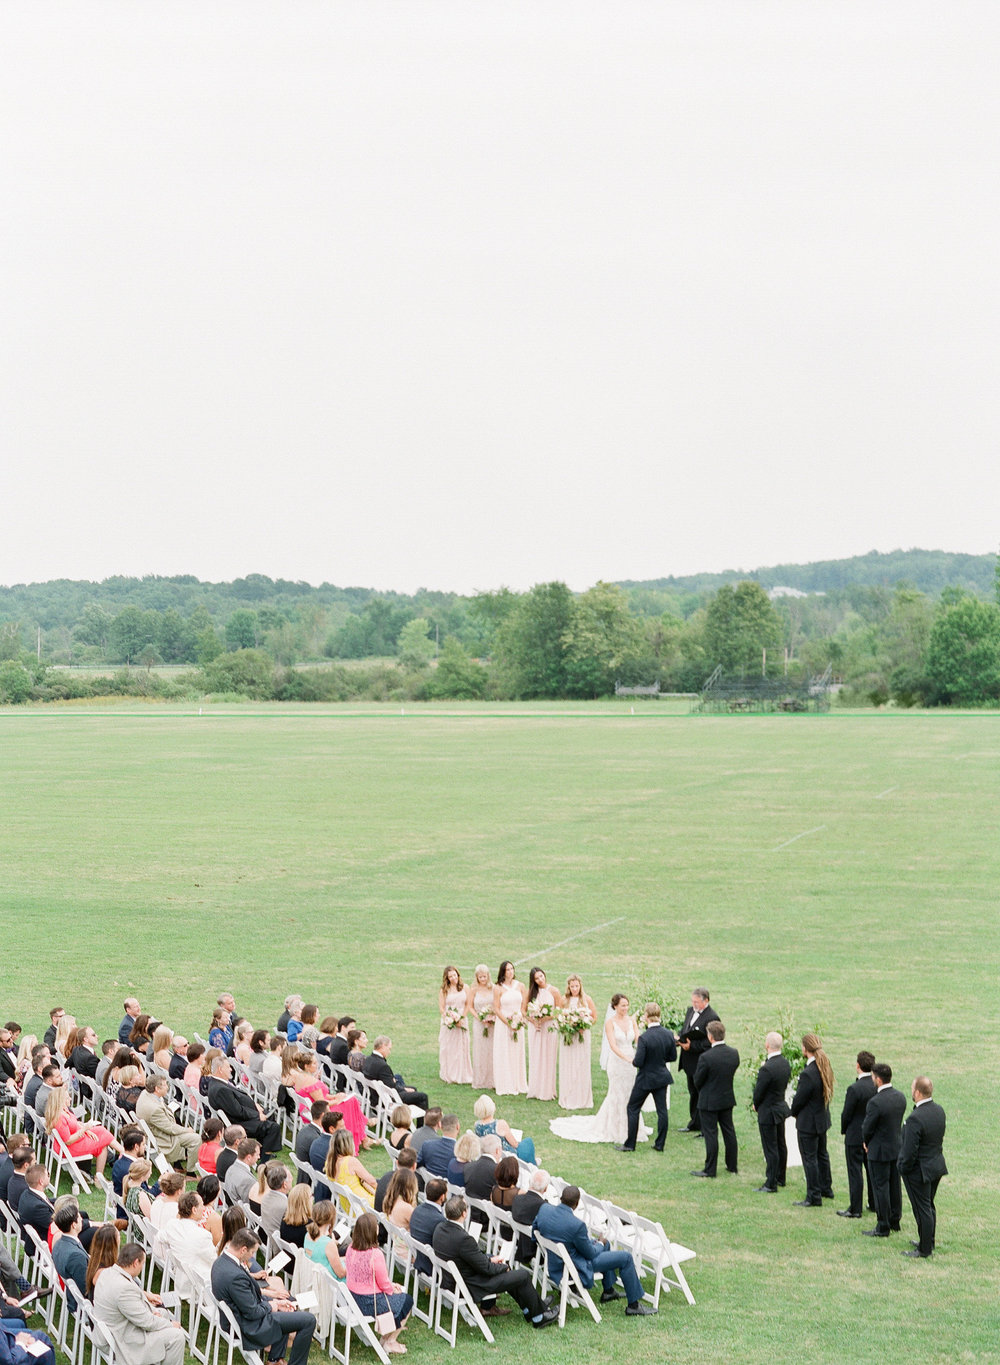 SARATOGA-SPRINGS-POLO-CLUB-WEDDING-BY-MATTHEW-MOORE-00368.jpg